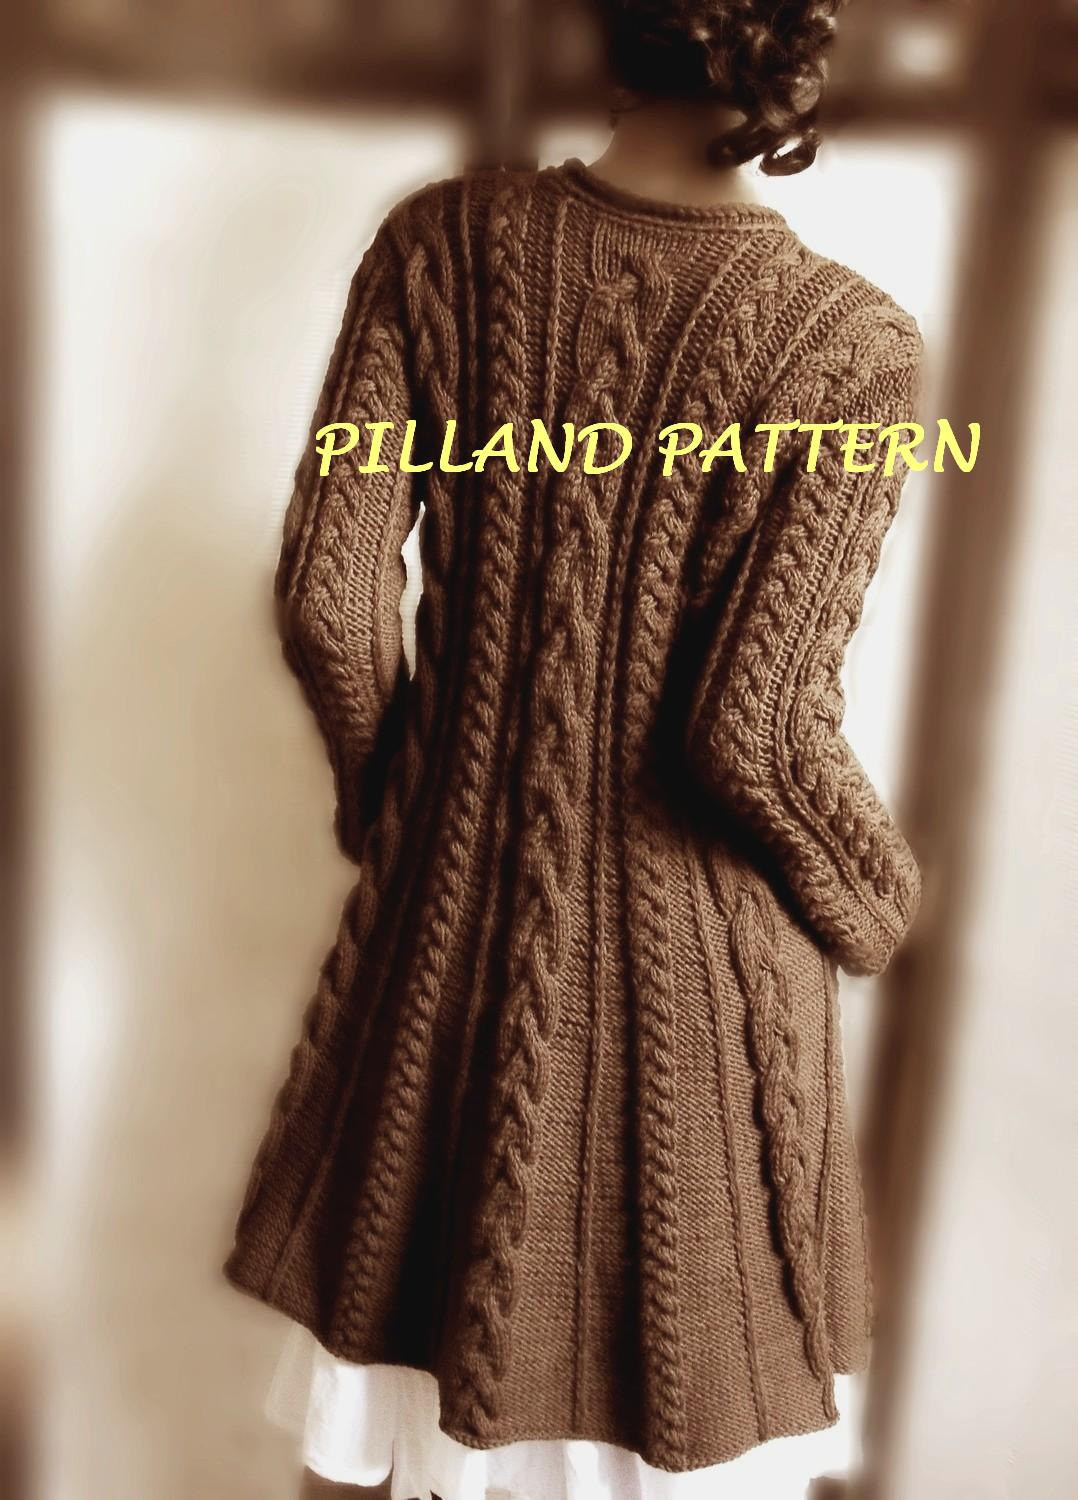 Luxury Sweater Coat Knitting Pattern Pdf Cable Knit A Line Coat Cable Knit Sweater Pattern Of Lovely Hand Knit Sweater Womens Cable Knit Cardigan Hooded Coat Cable Knit Sweater Pattern